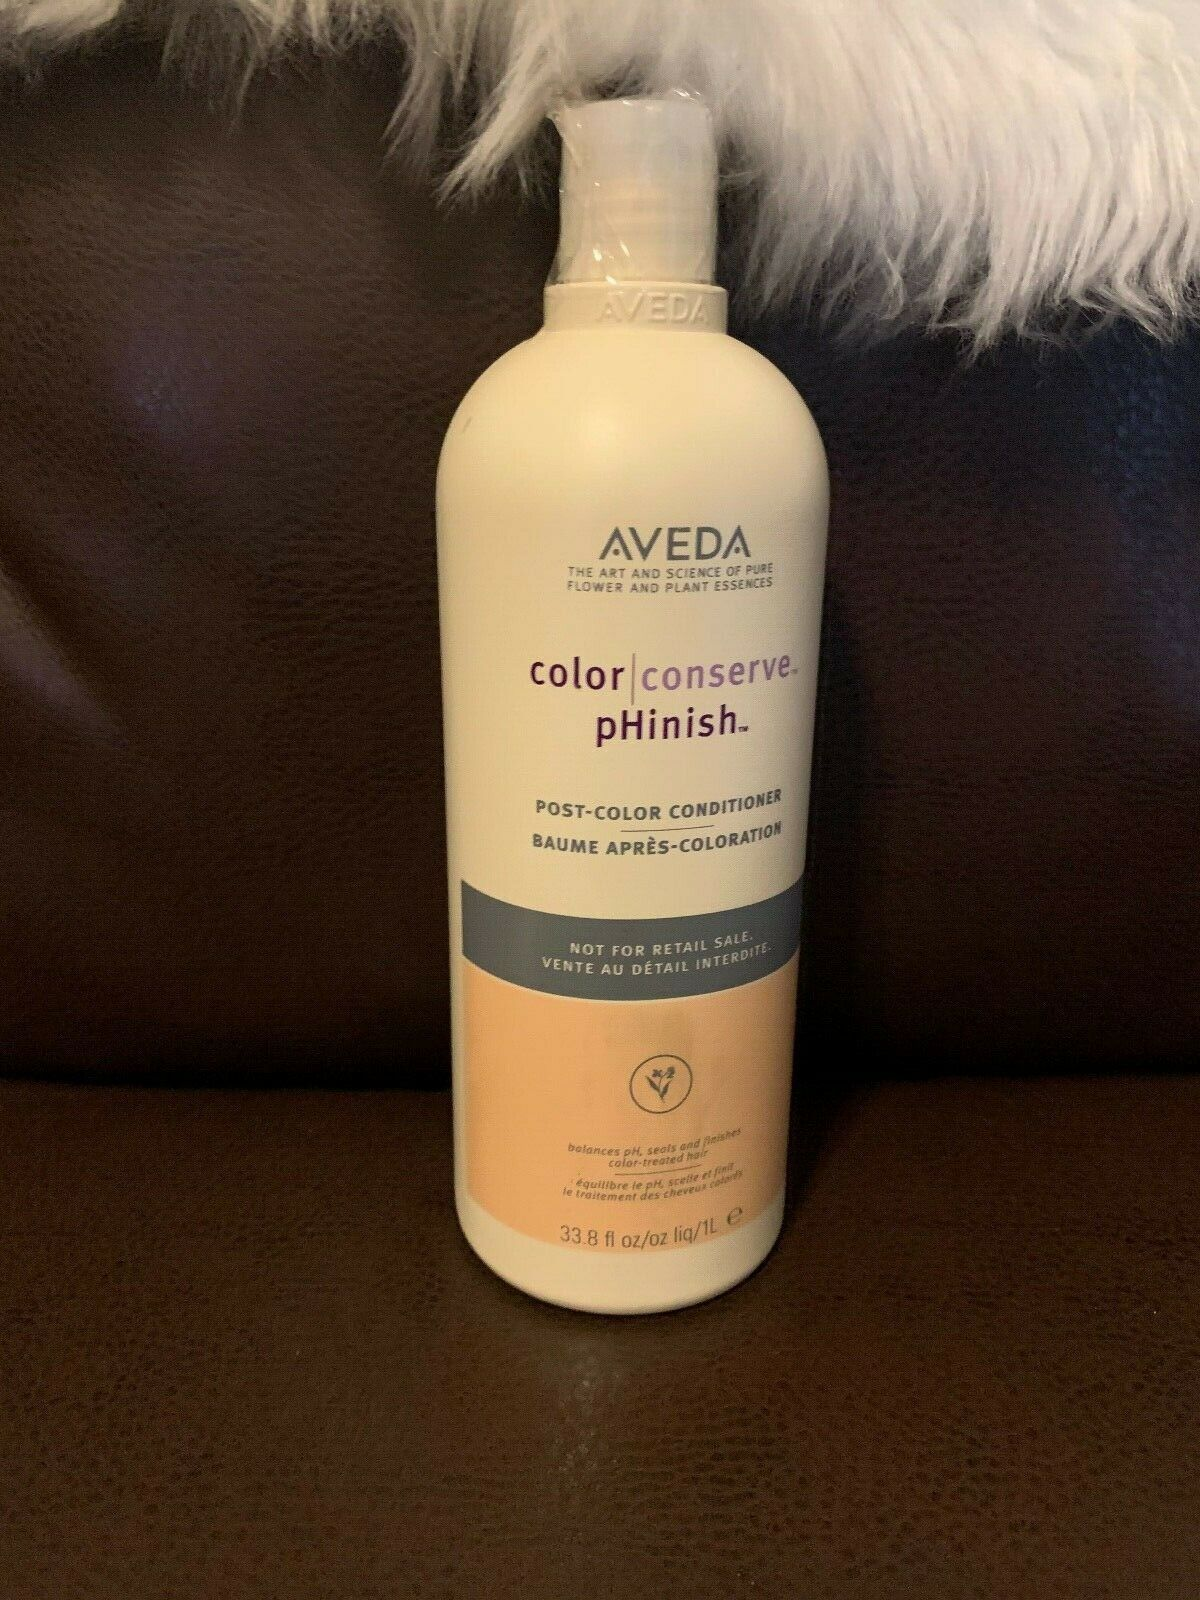 Aveda Color Conserve PHinish Post Color Conditioner 33.8 oz